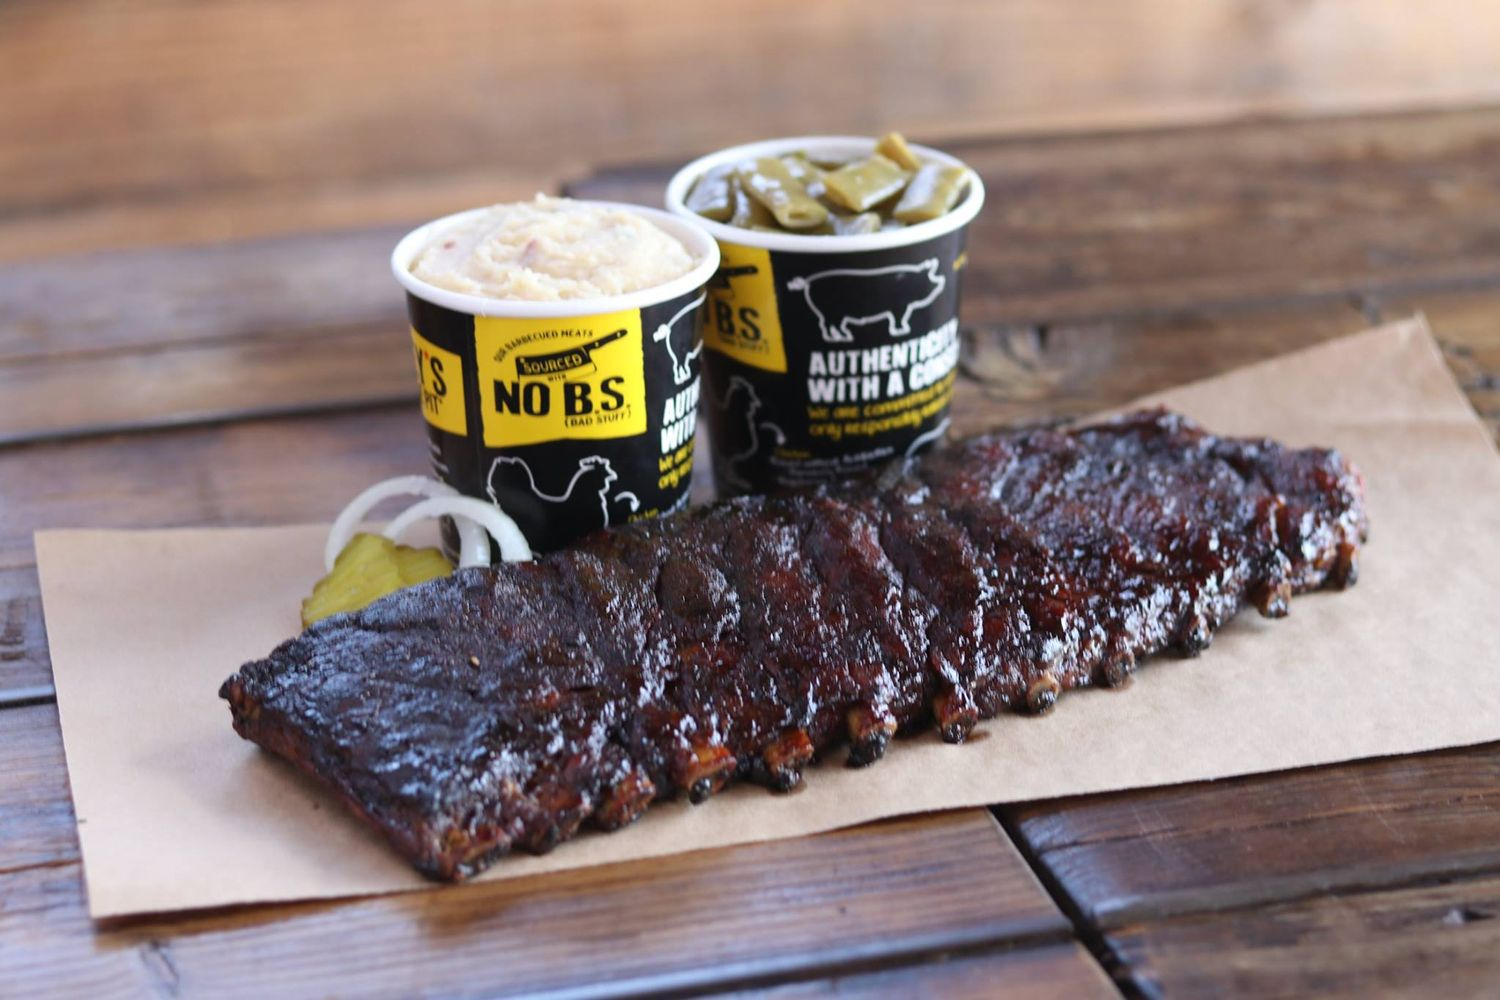 Dickey's Barbecue Pit Offers North Carolinians a Delicious and Convenient Barbecue Option